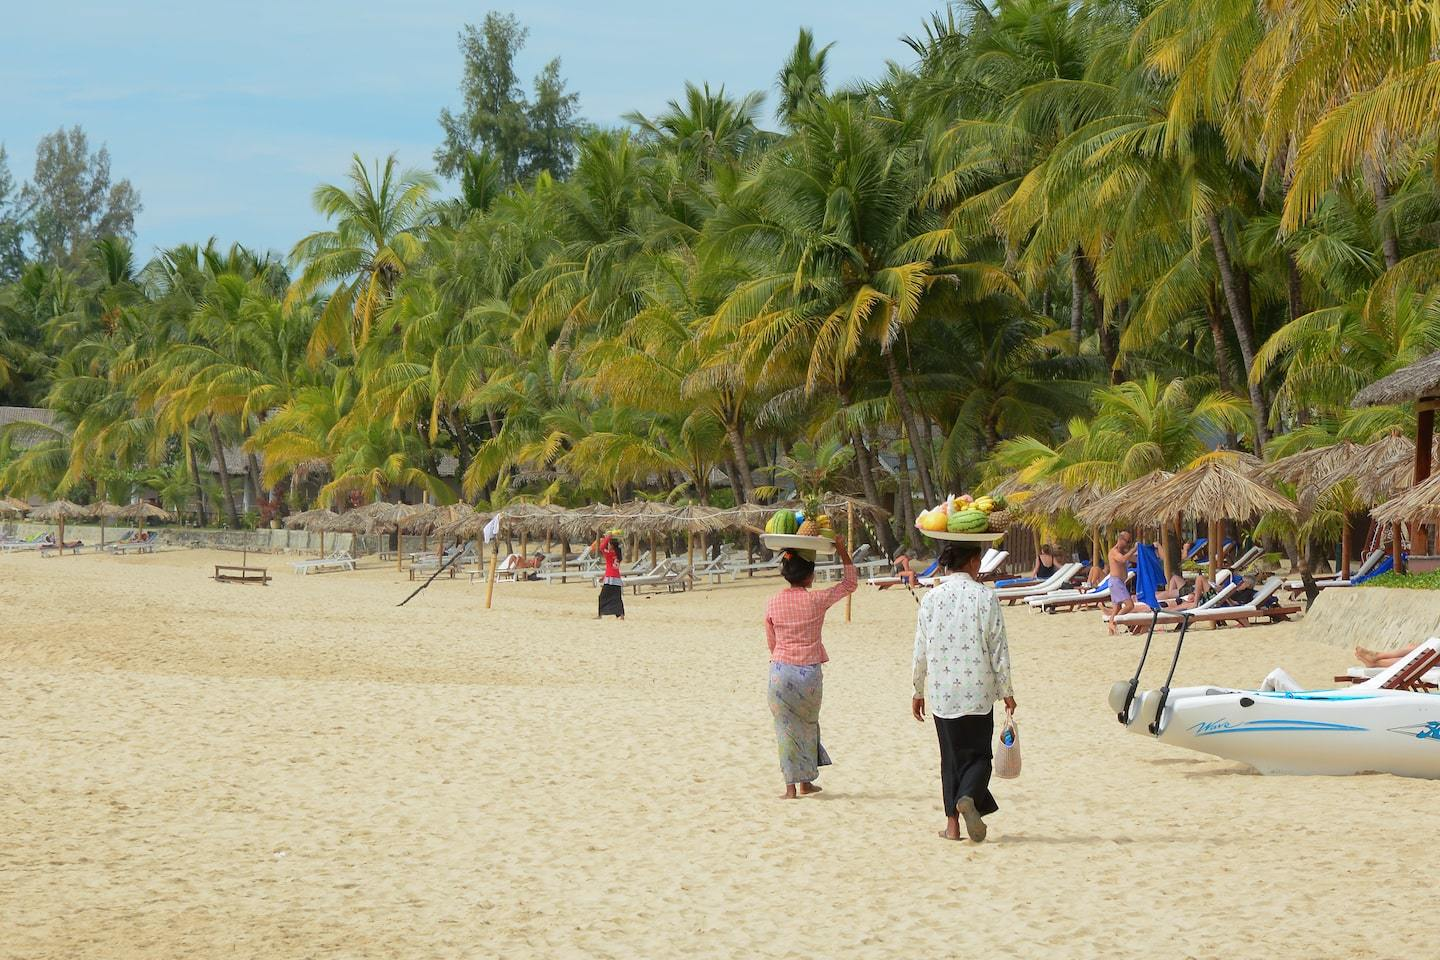 women walking with fruit baskets on their head along a beach with palm trees